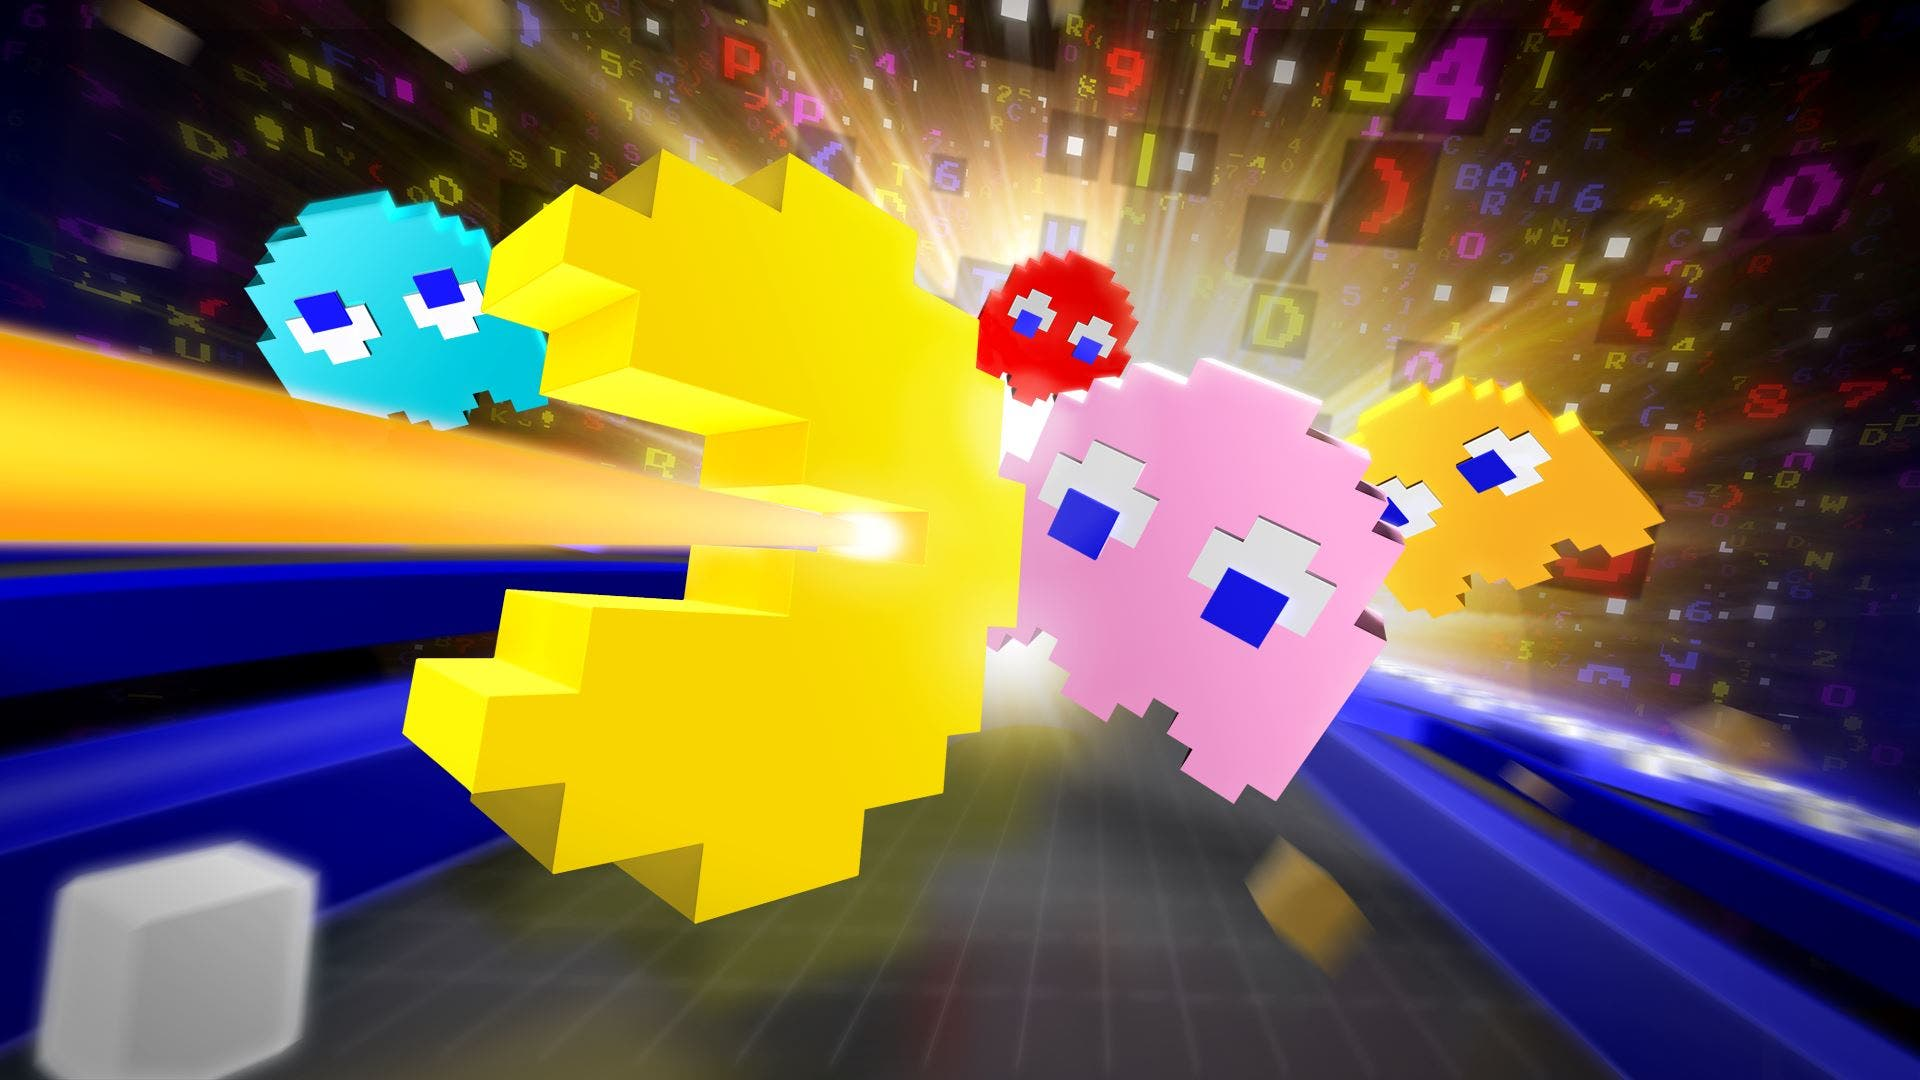 PACMAN256 featured